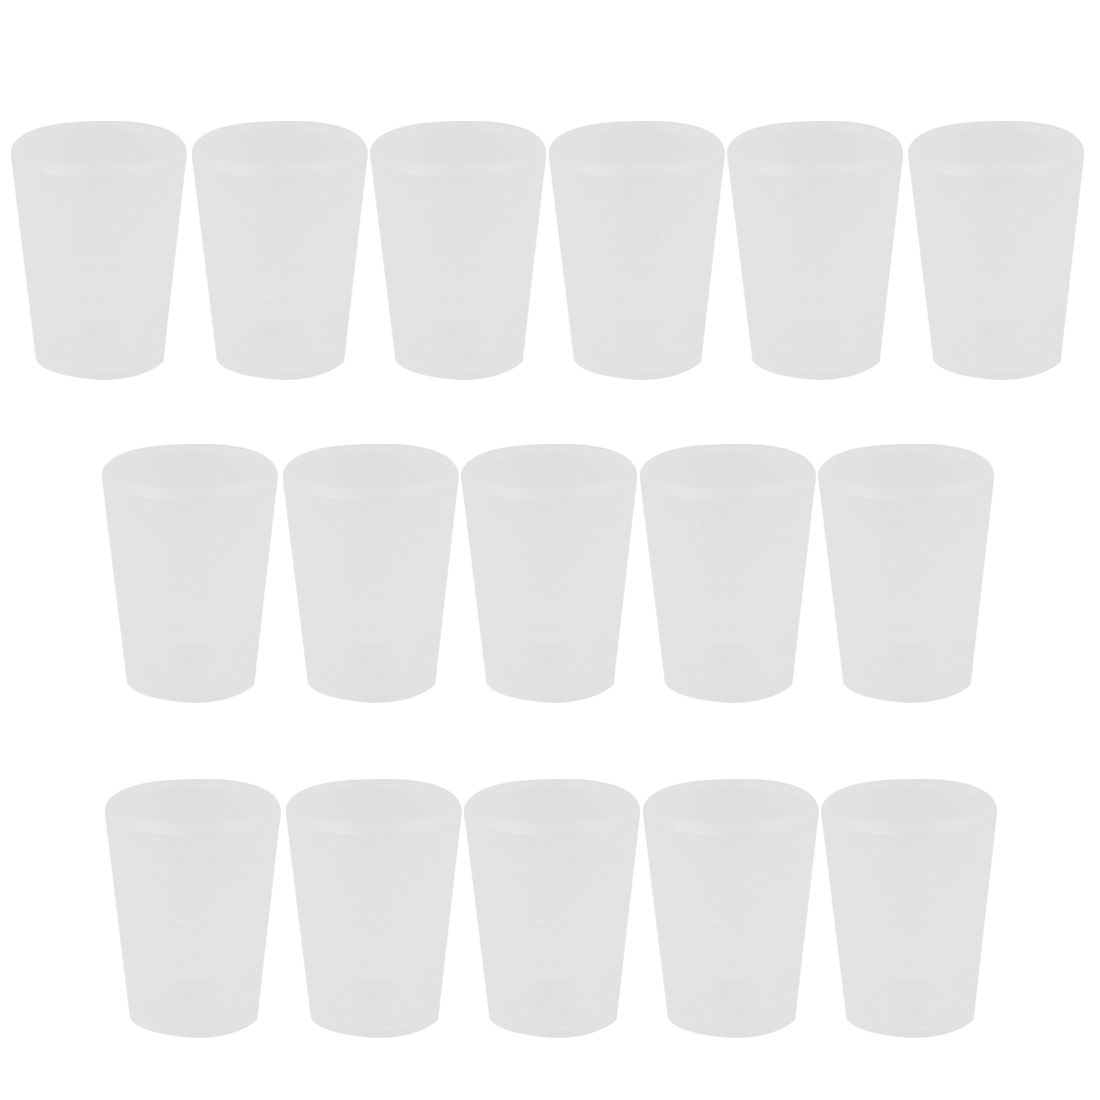 16pcs School Lab Plastic Liquid Container Measuring Testing Beaker 50mL Capacity